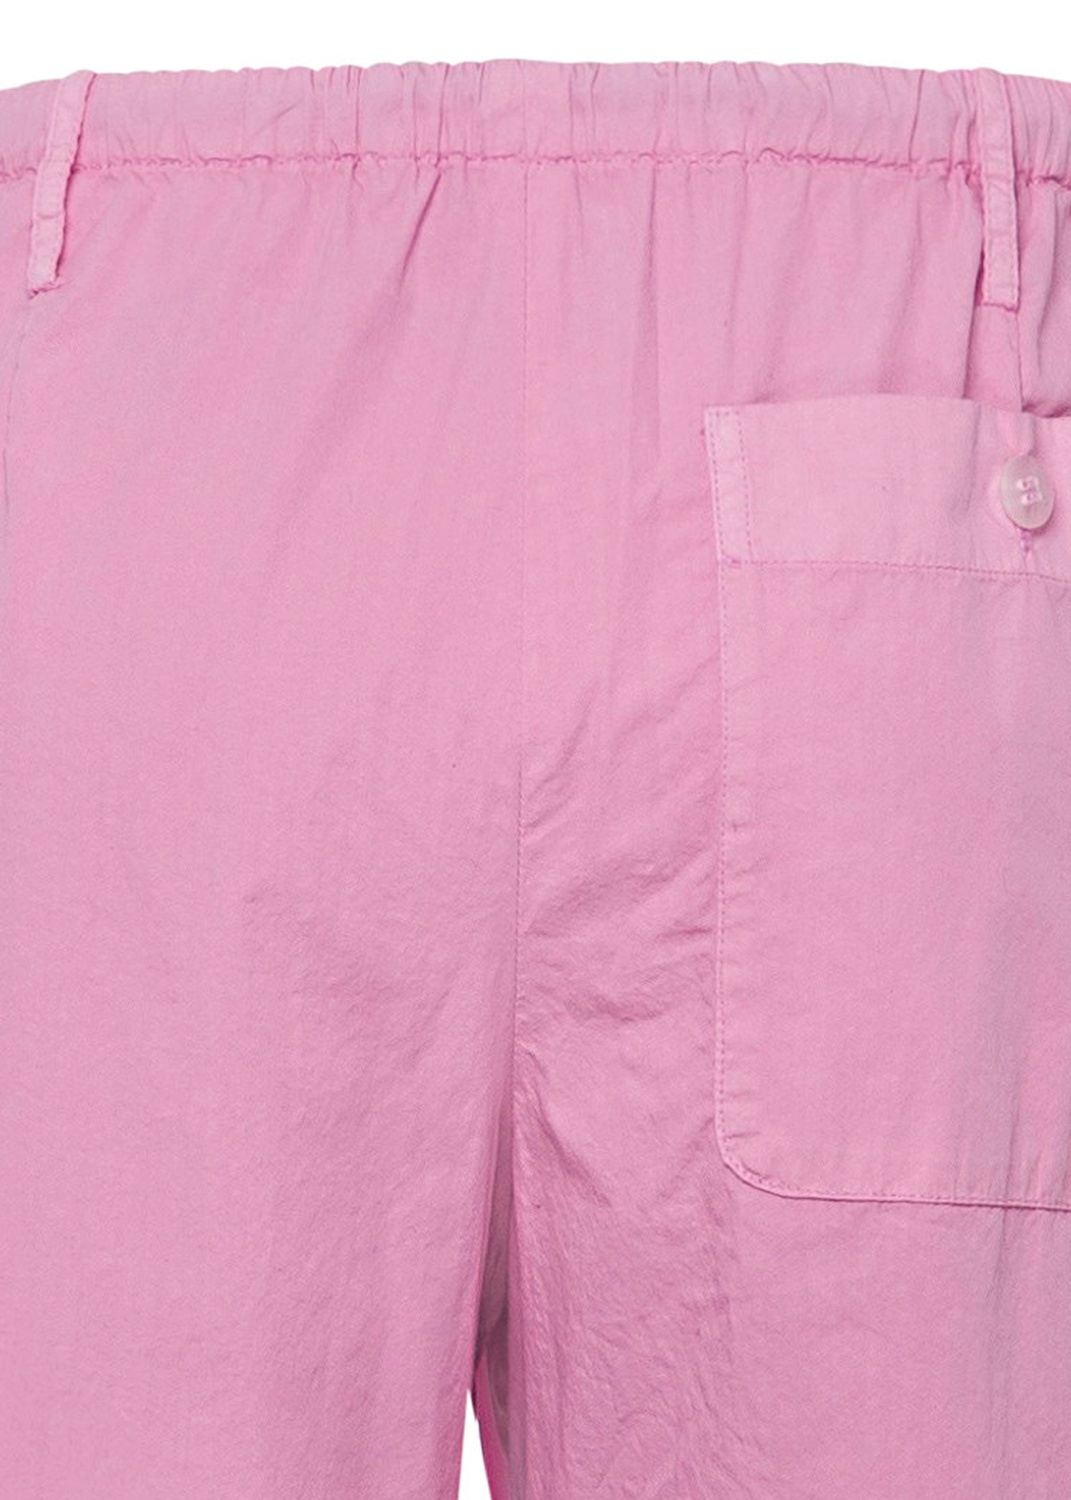 PENNY 2279 M.W. PANTS image number 3